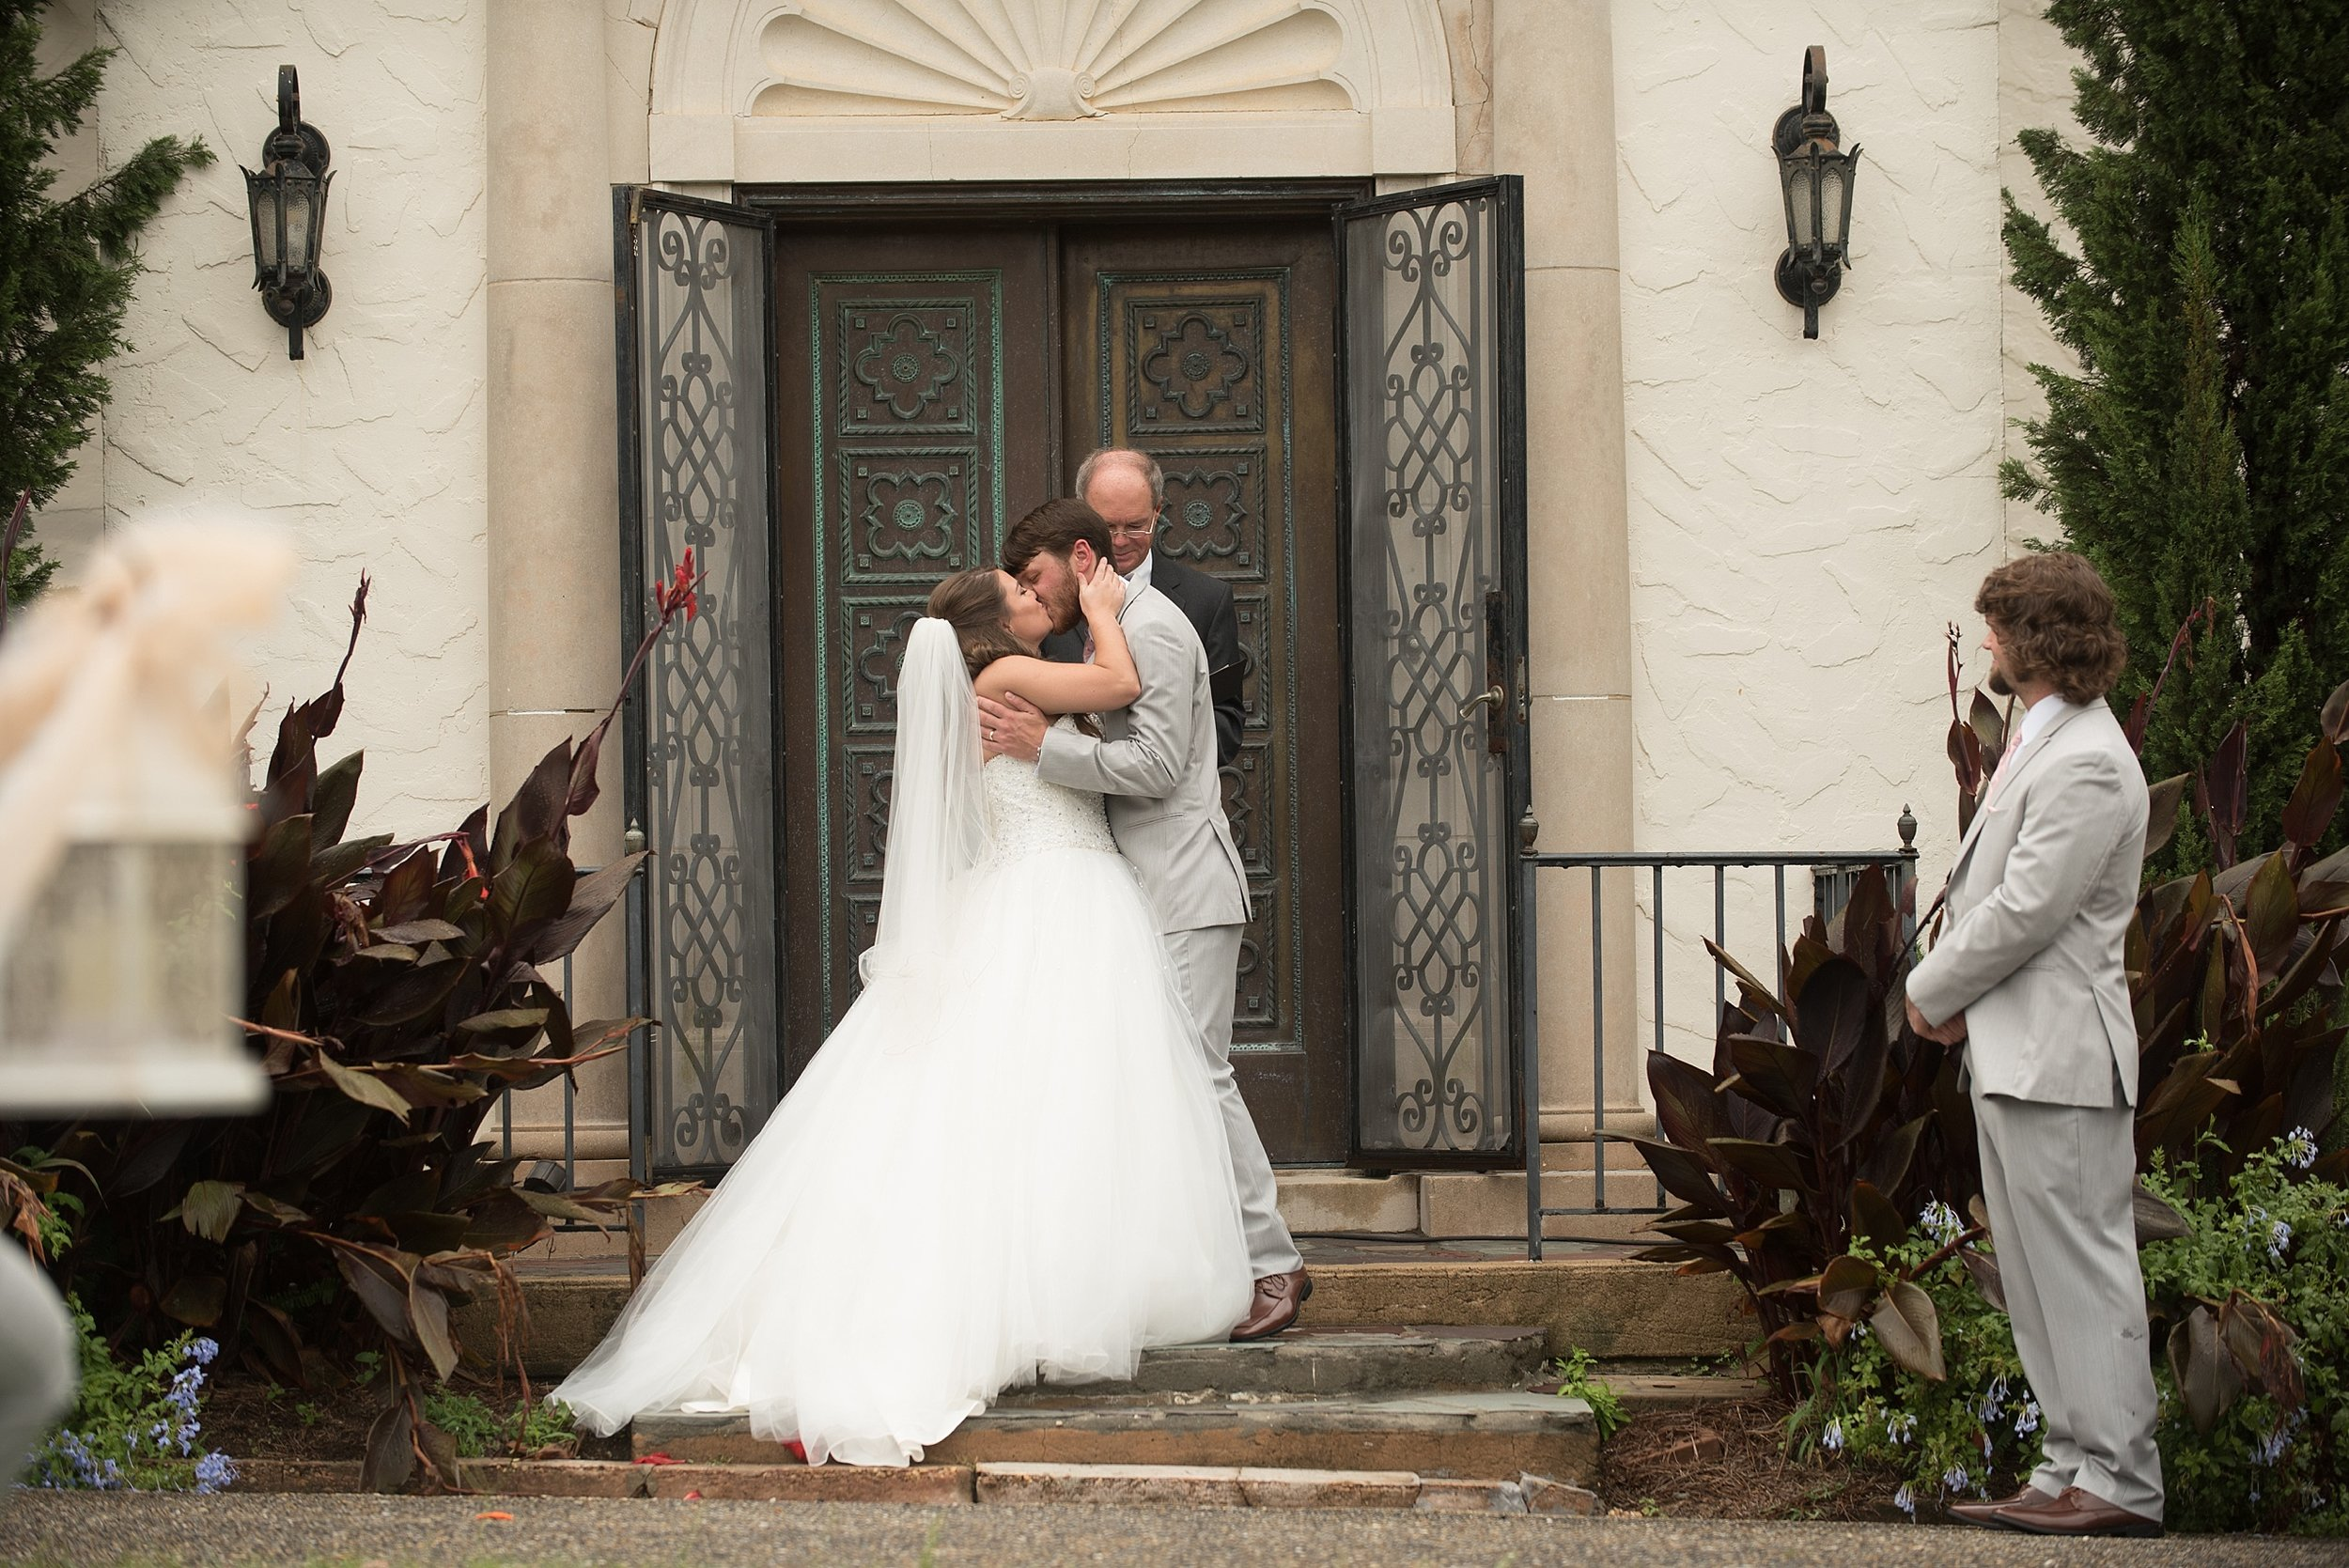 Bride and groom have their first kiss as husband and wife during their wedding ceremony at Springdale in Andalusia, Alabama